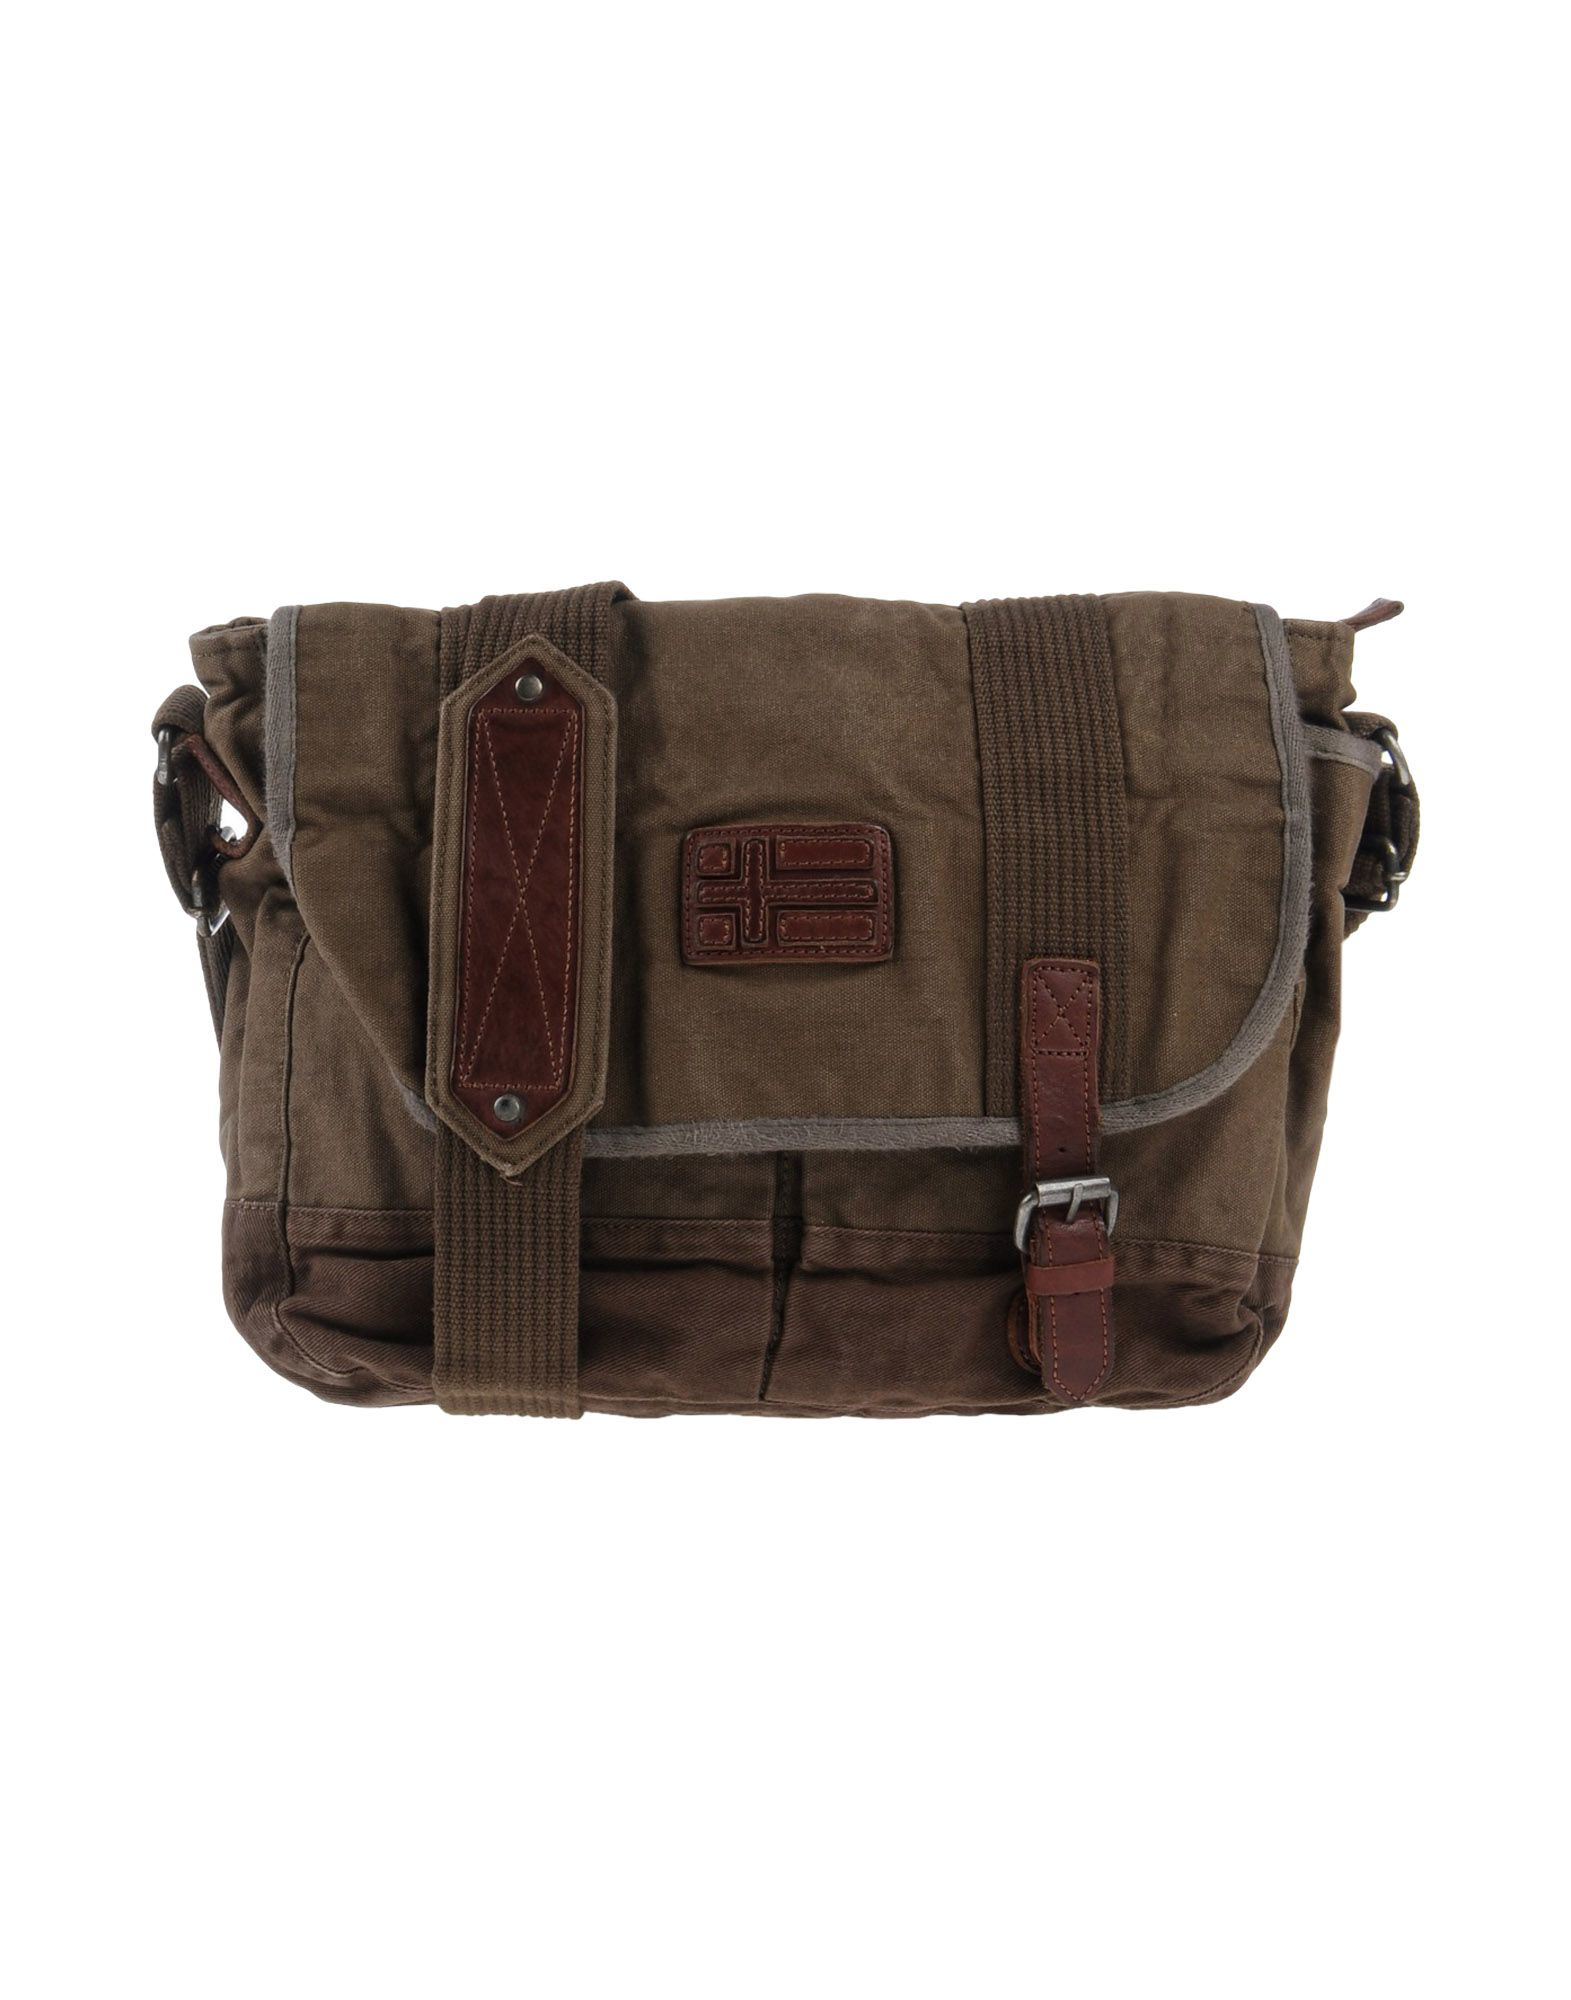 Lyst - Napapijri Cross-body Bag for Men ff86dd8c834df